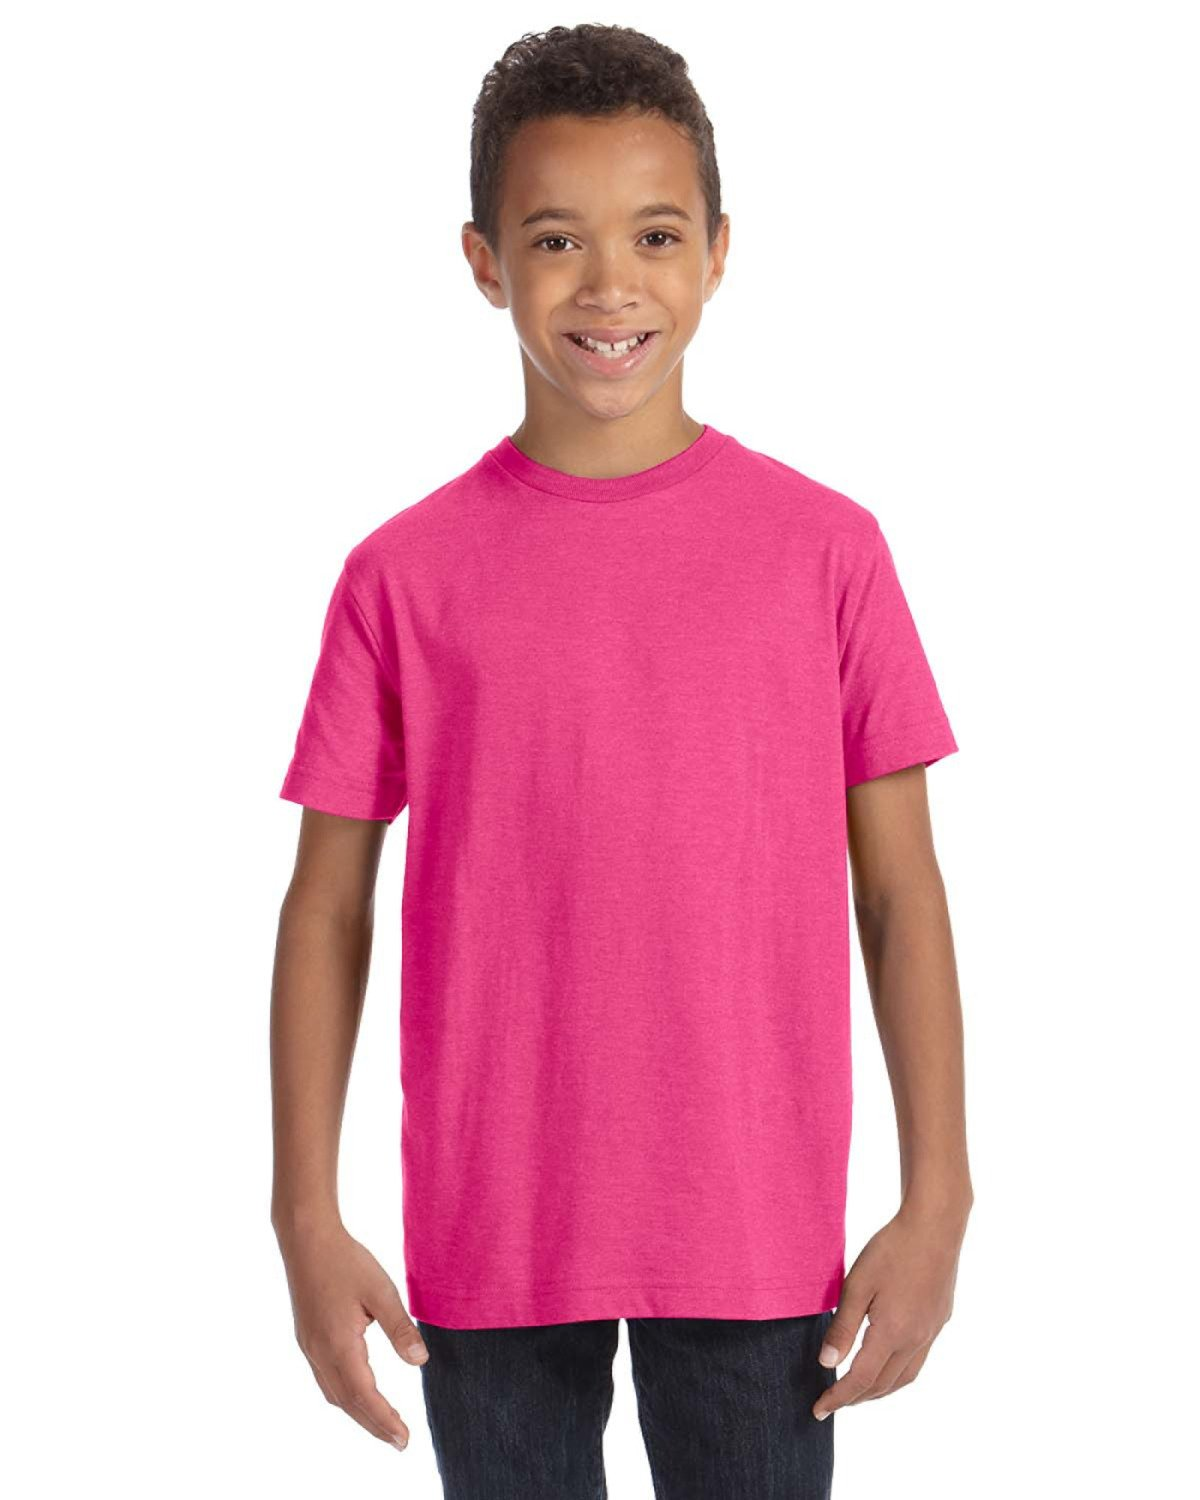 LAT Youth Fine Jersey T-Shirt VINTAGE HOT PINK